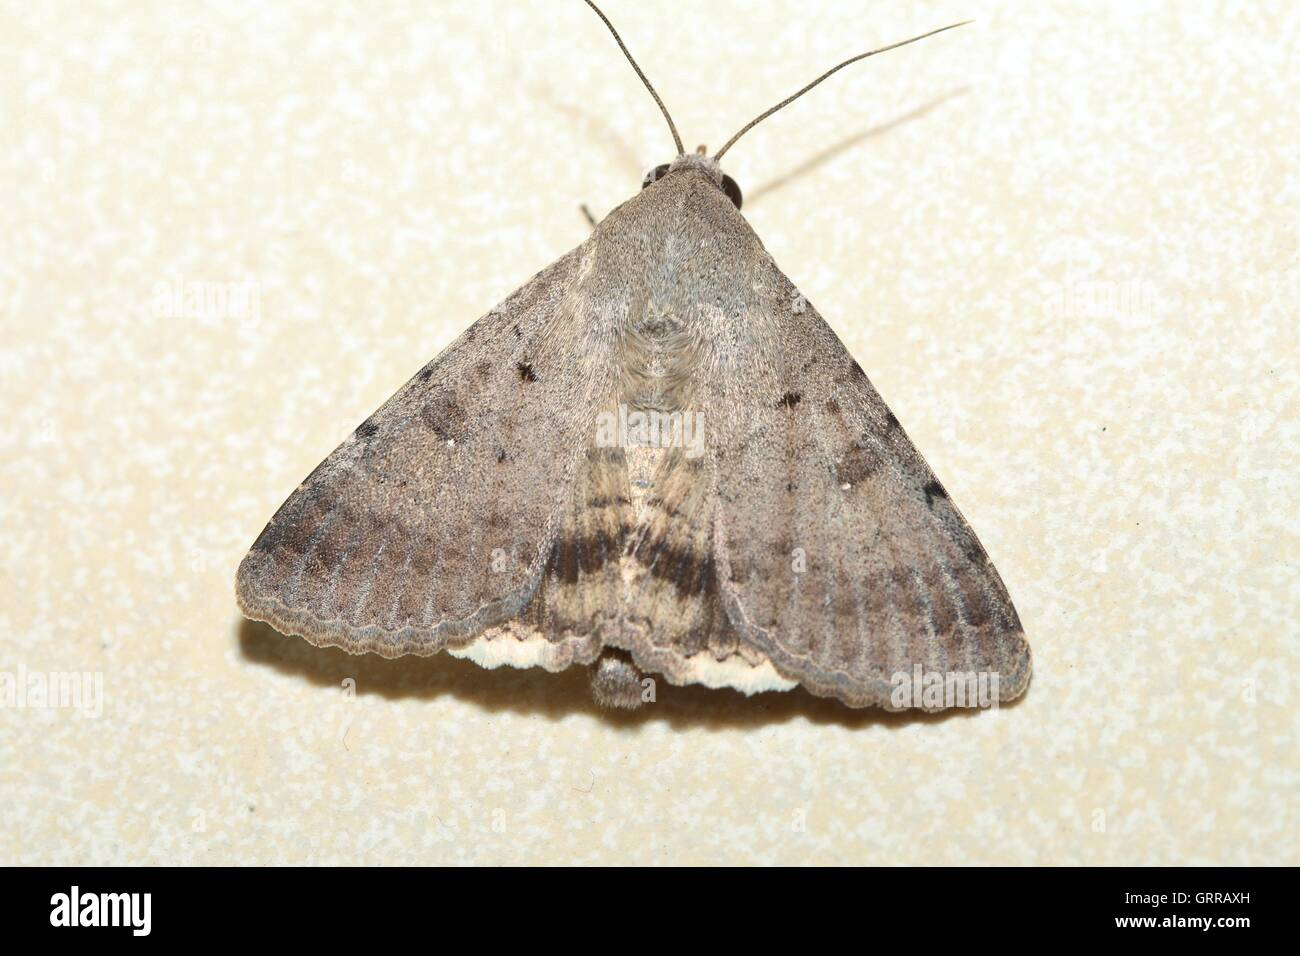 Moth with delta-like wings looking like the Concorde resting on floor. - Stock Image